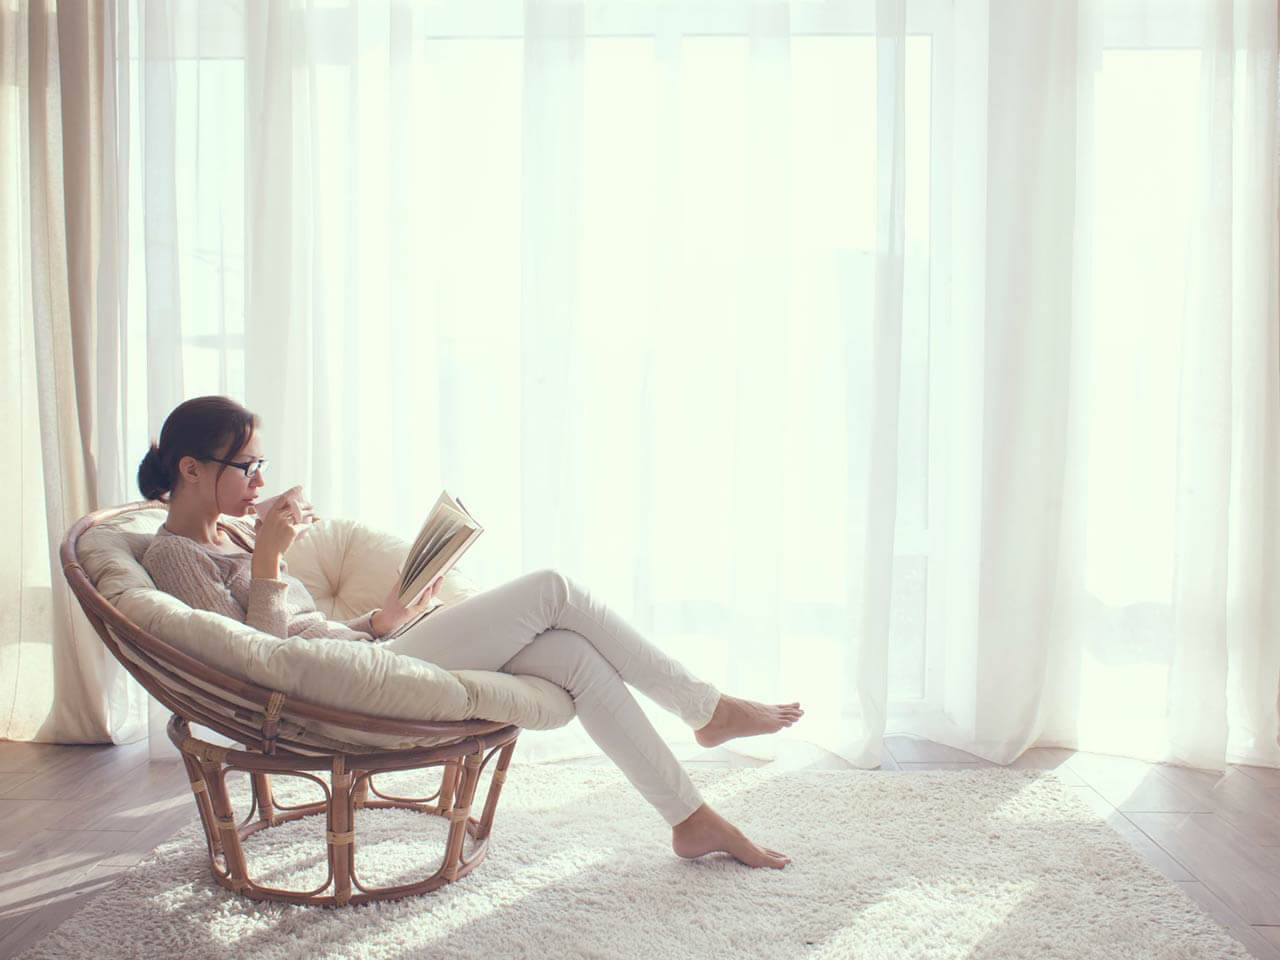 Lady sitting and reading book